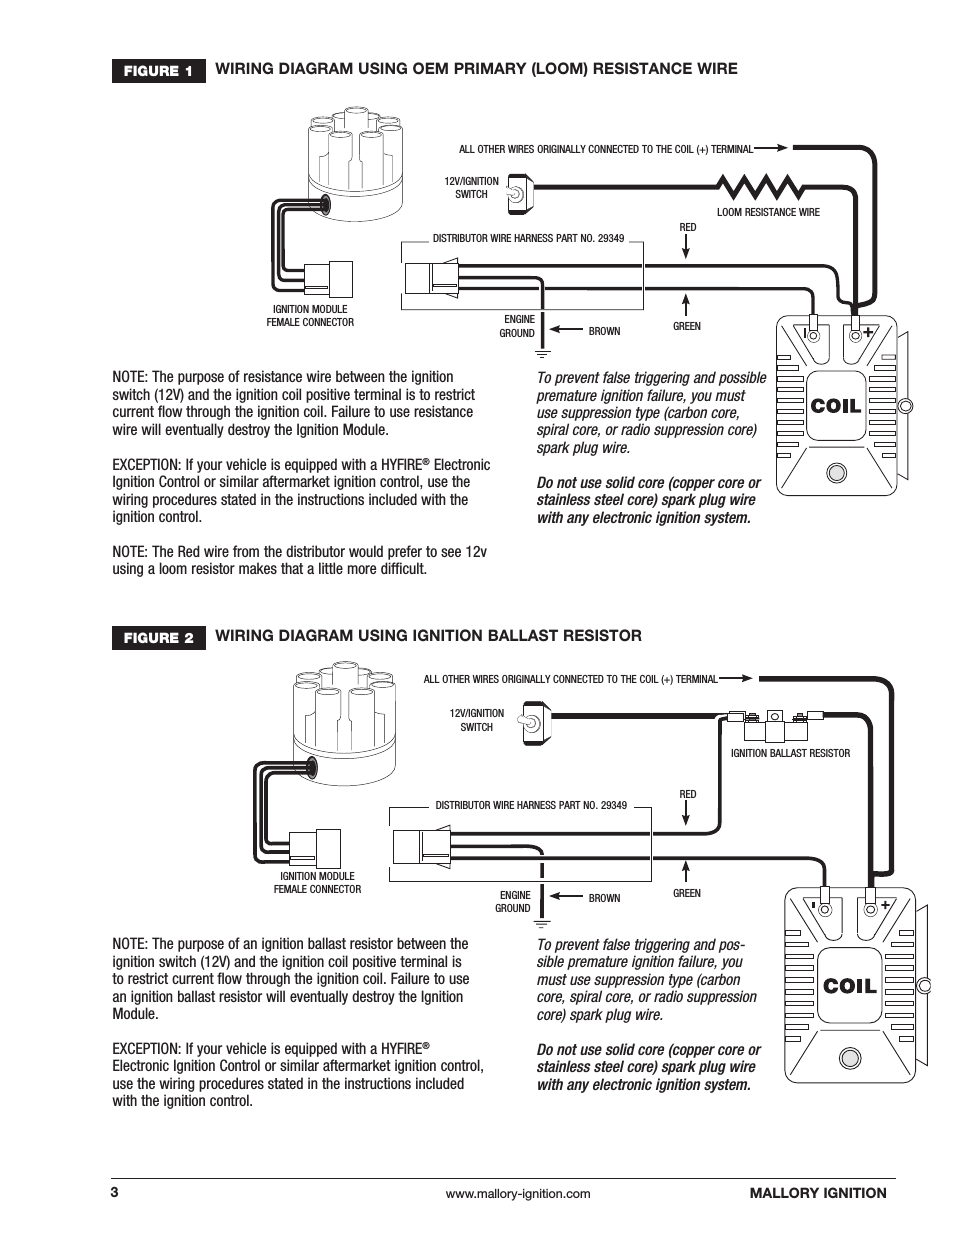 Mallory Ignition Mallory Magnetic Breakerless Distributor 609 User - Mallory Magnetic Breakerless Distributor Wiring Diagram